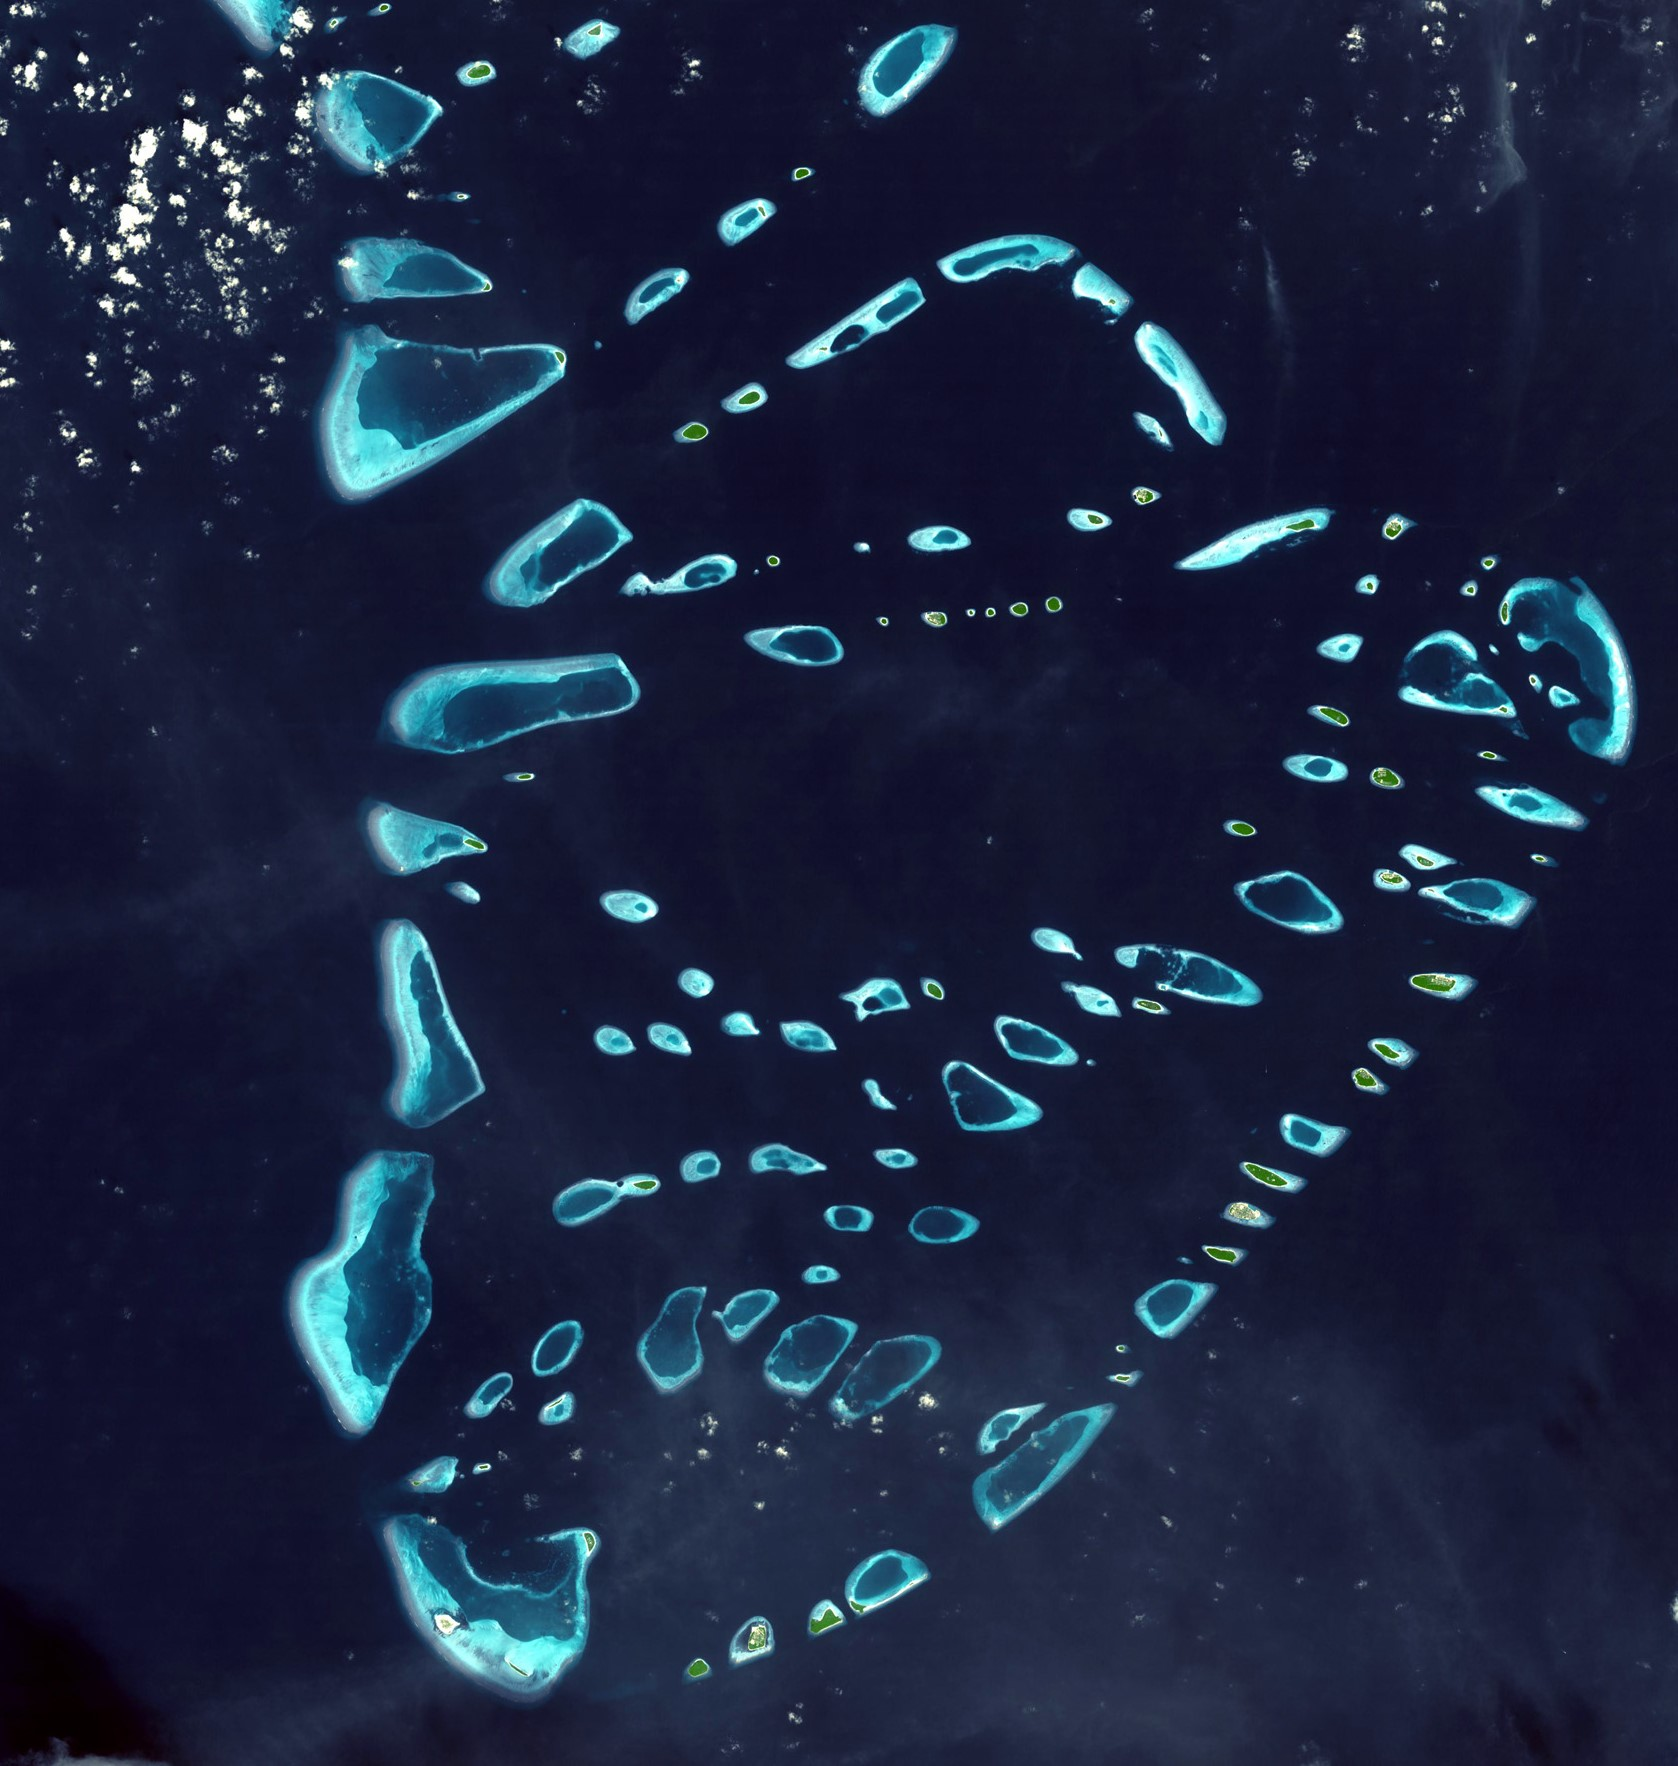 Image 3 Satellite view of Baa Atoll - Maldives, showing turquoise island reef lagoons nested within the dark blue waters of the intra-atoll lagoon and its channels. Image credit: NASA/GSFC/METI/ERSDAC/JAROS, and U.S./Japan